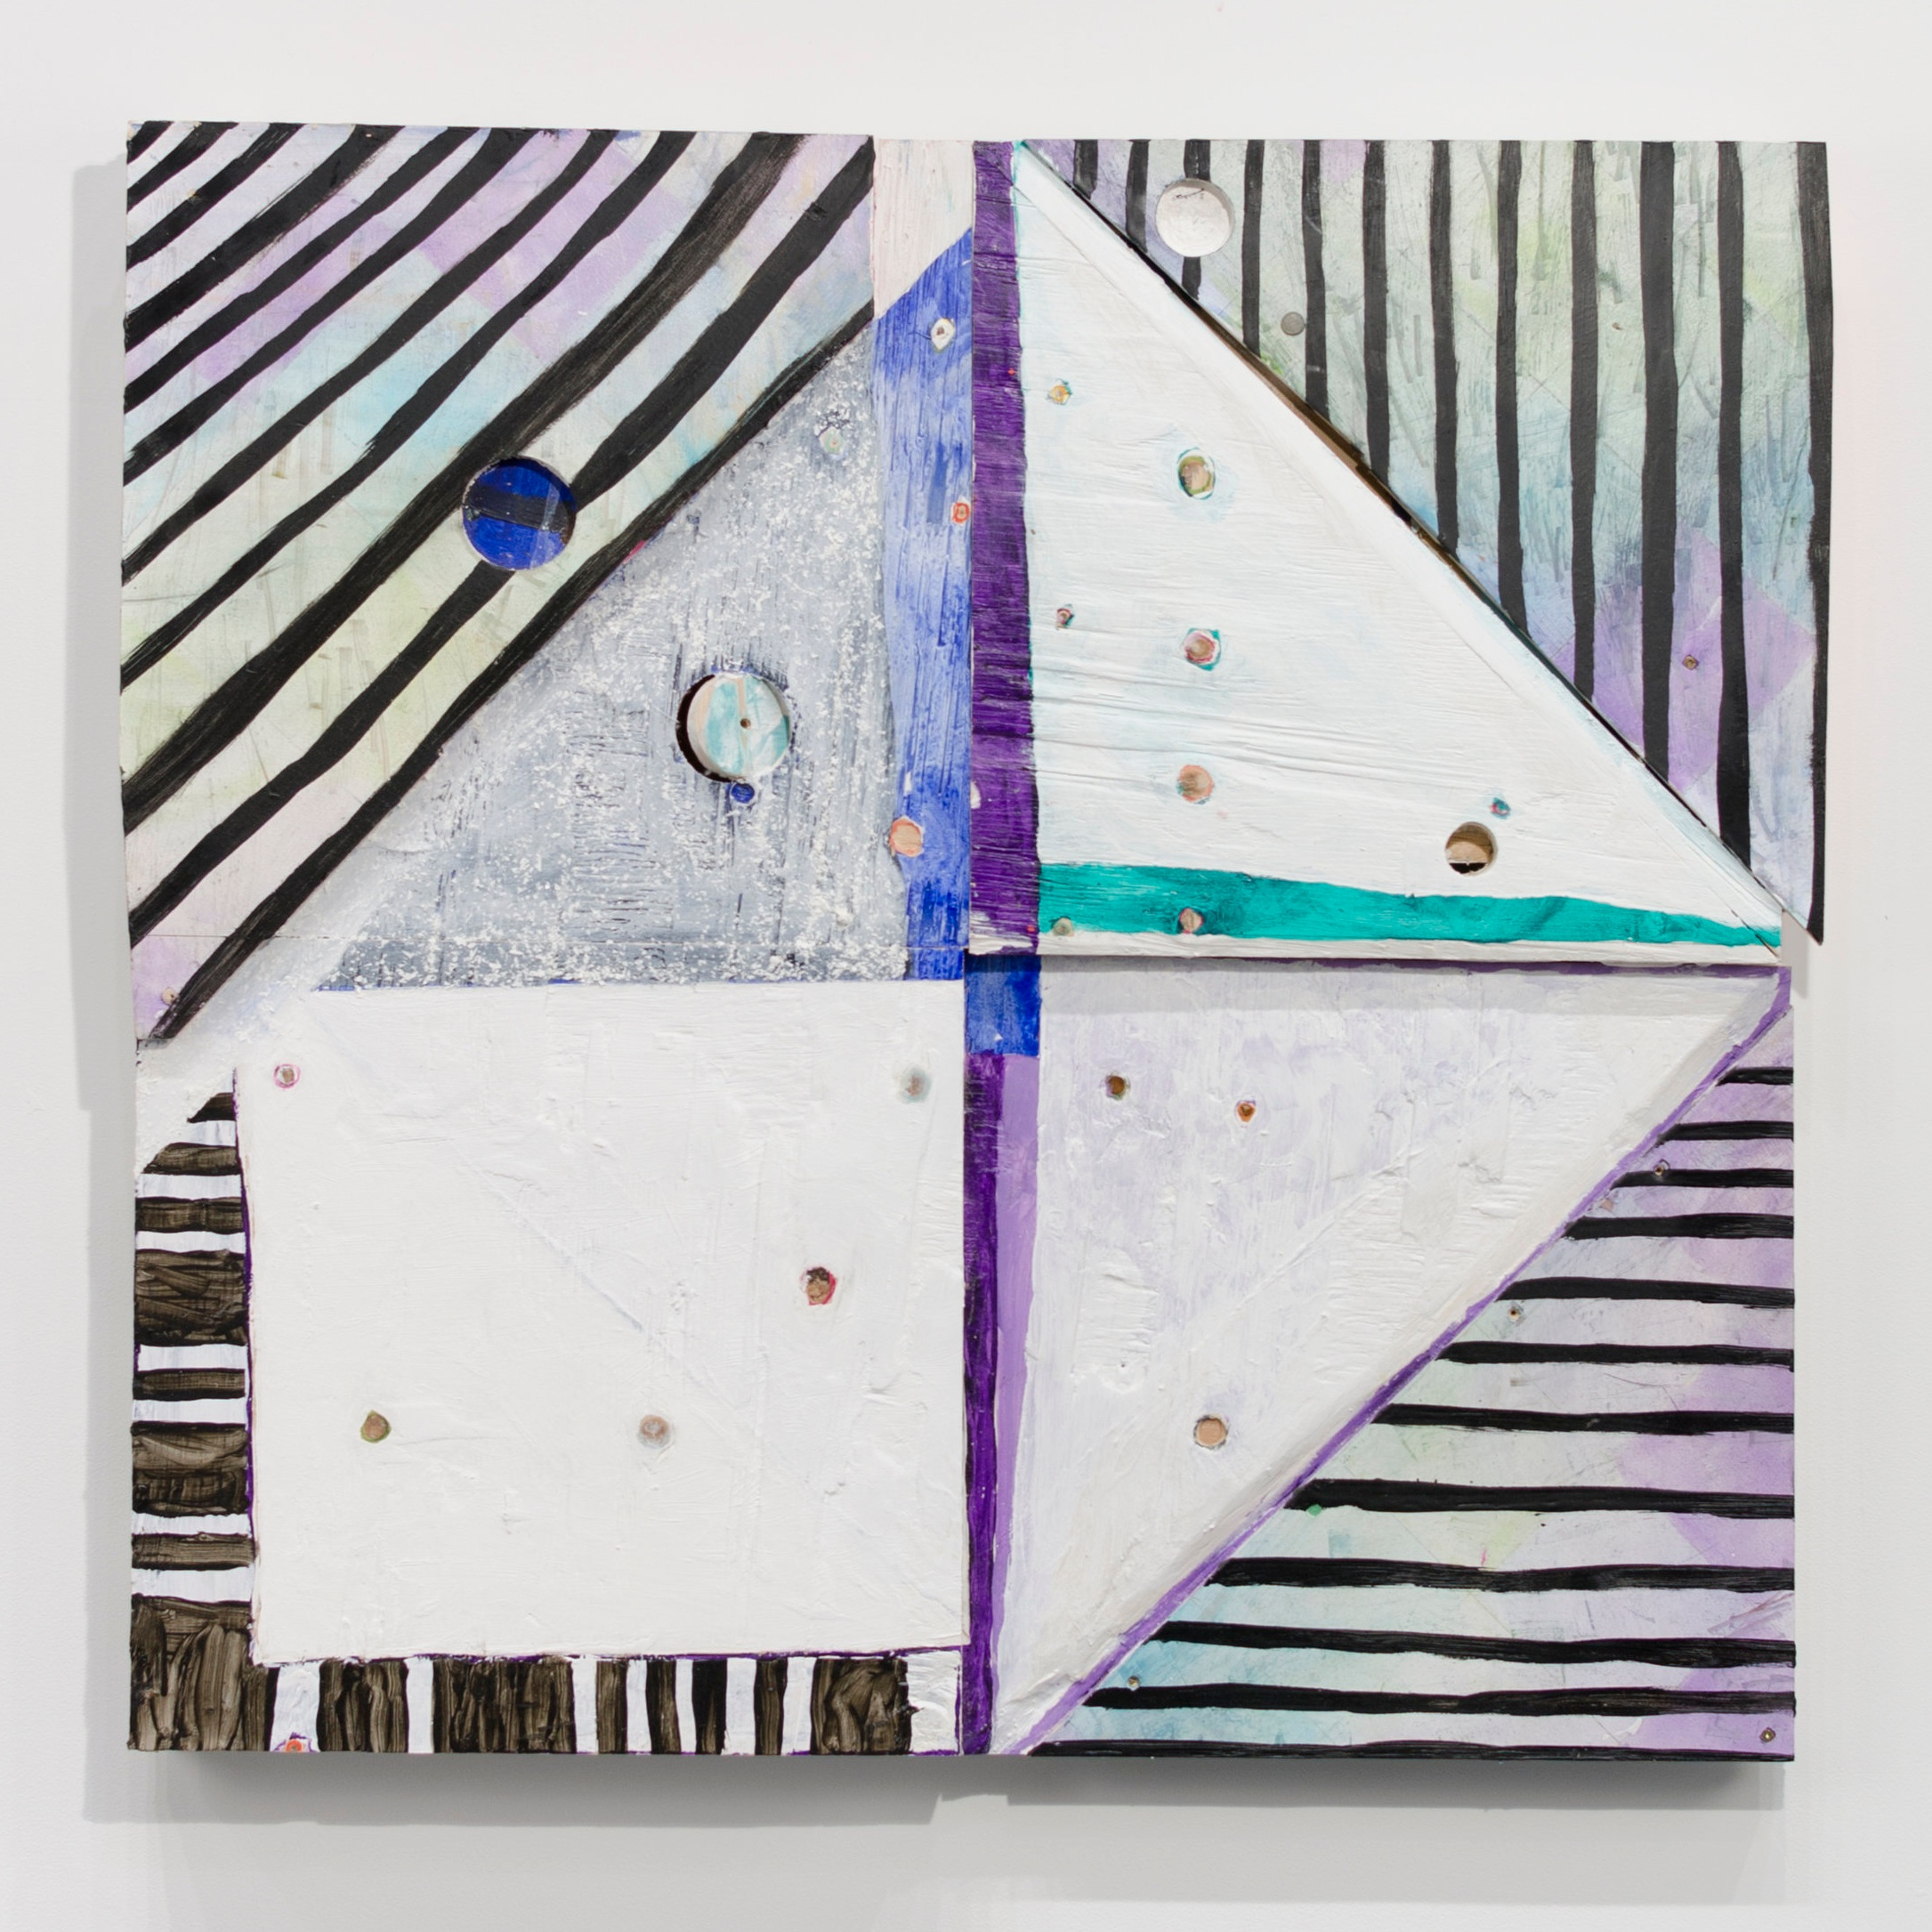 Untitled , 2015  Acrylic, shallac, and encaustic on wood  32 x 33 1/4 x 3 inches